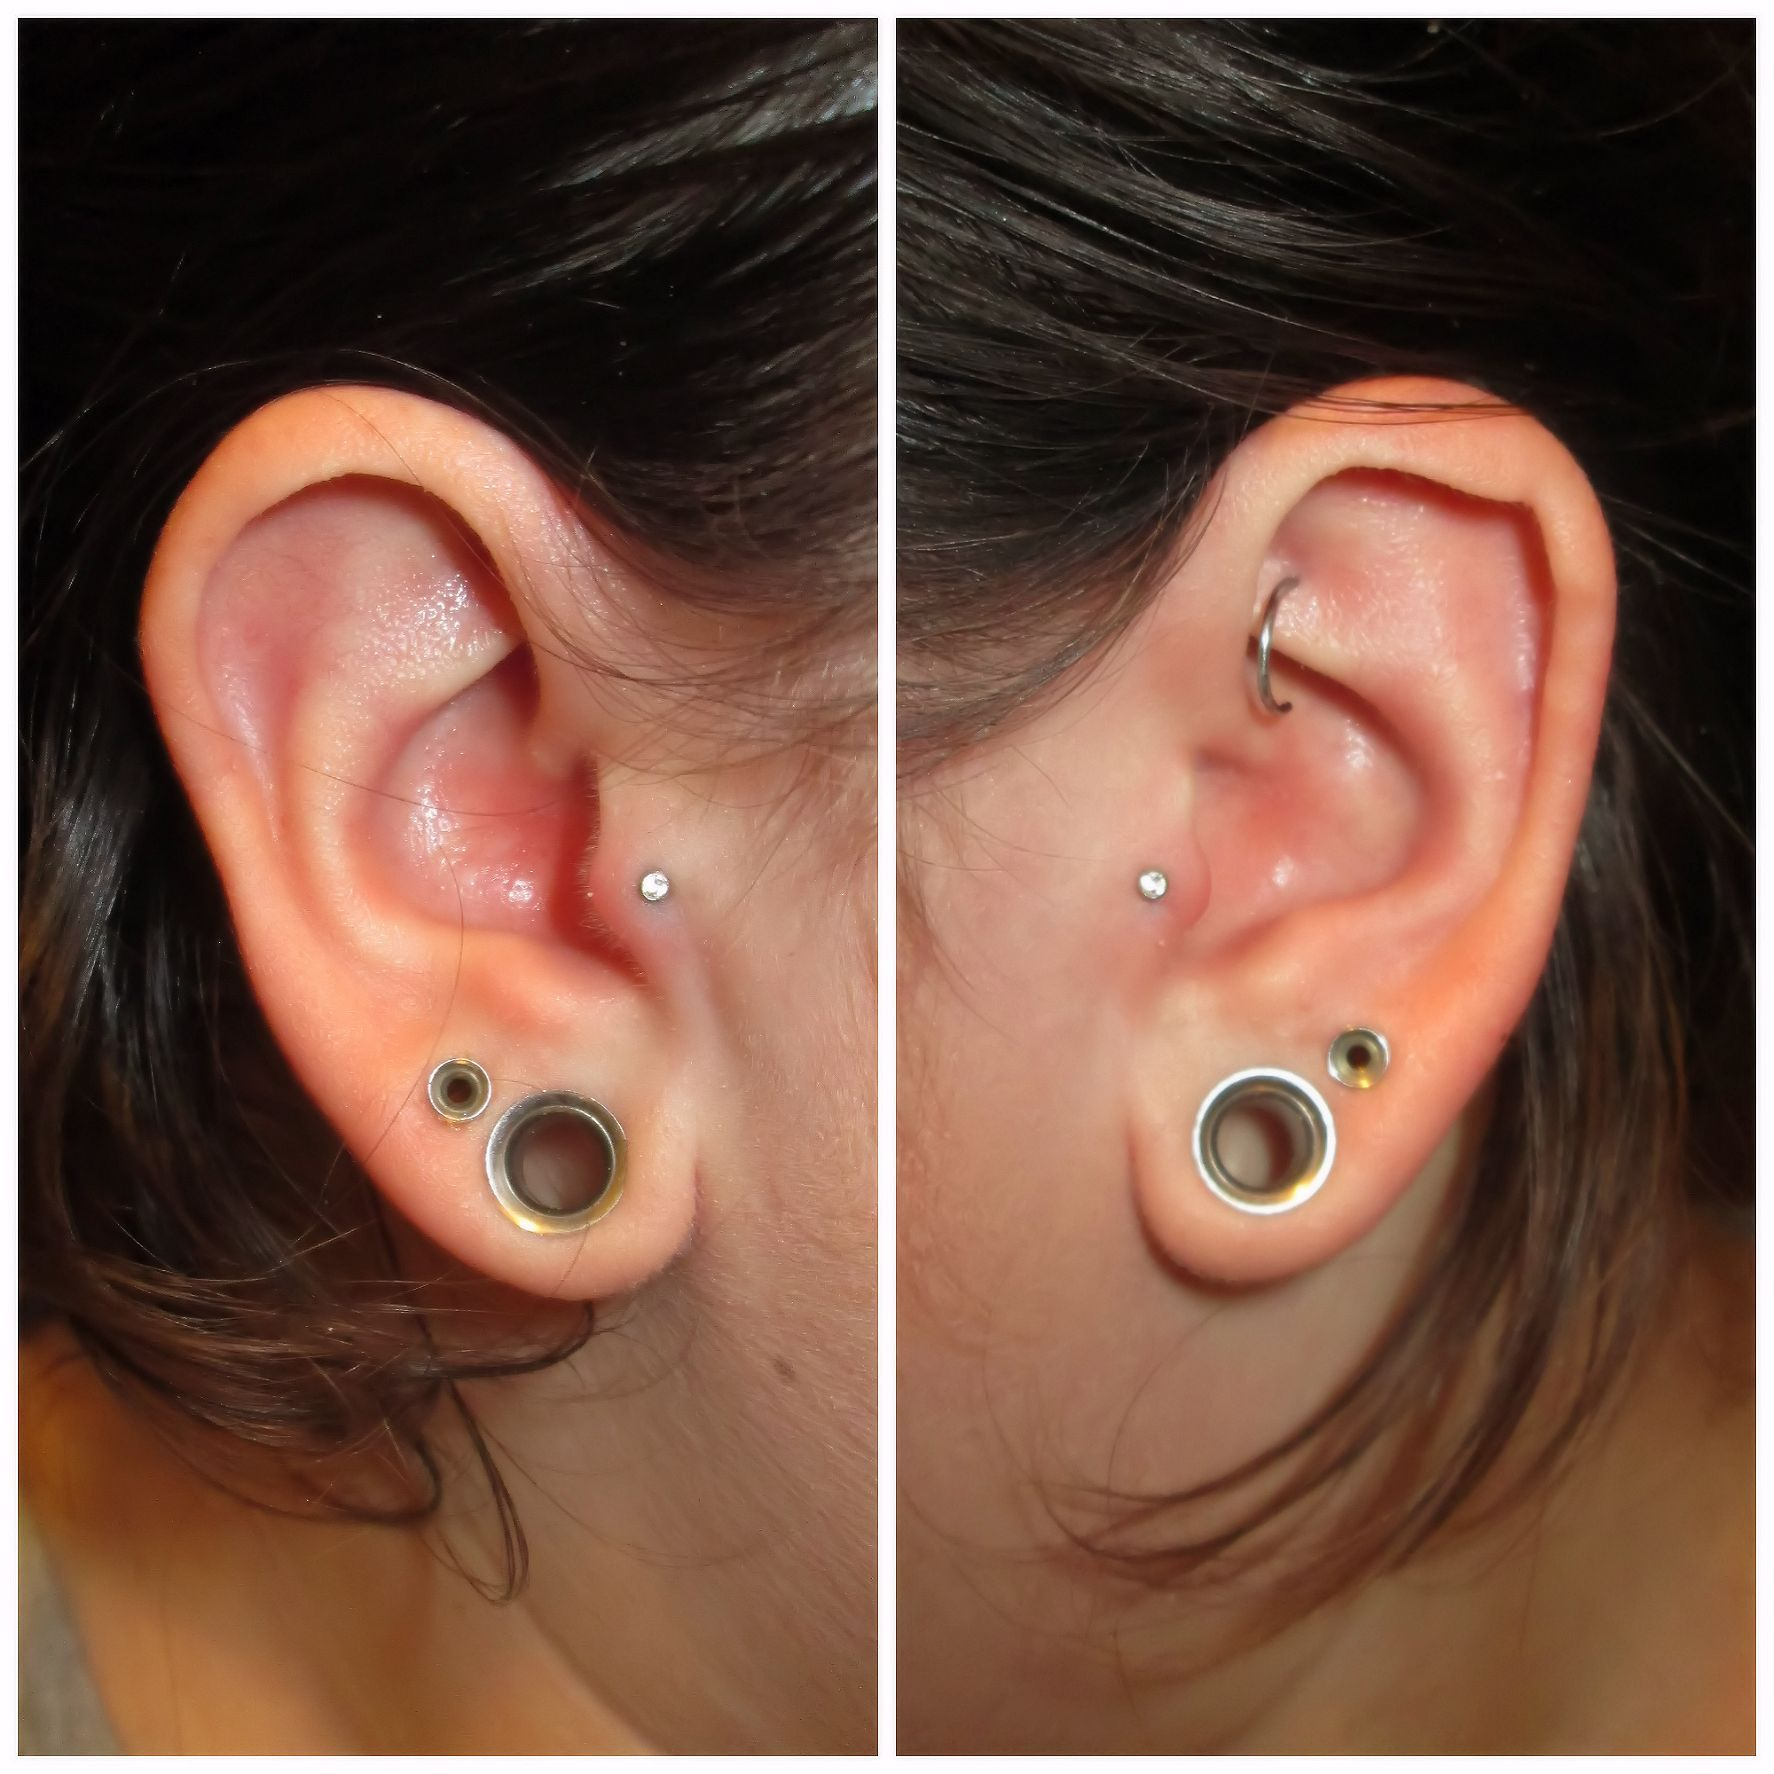 Gauging or stretching your ears information and stretch gauge kits - Explore Stretched Ears Tragus And More